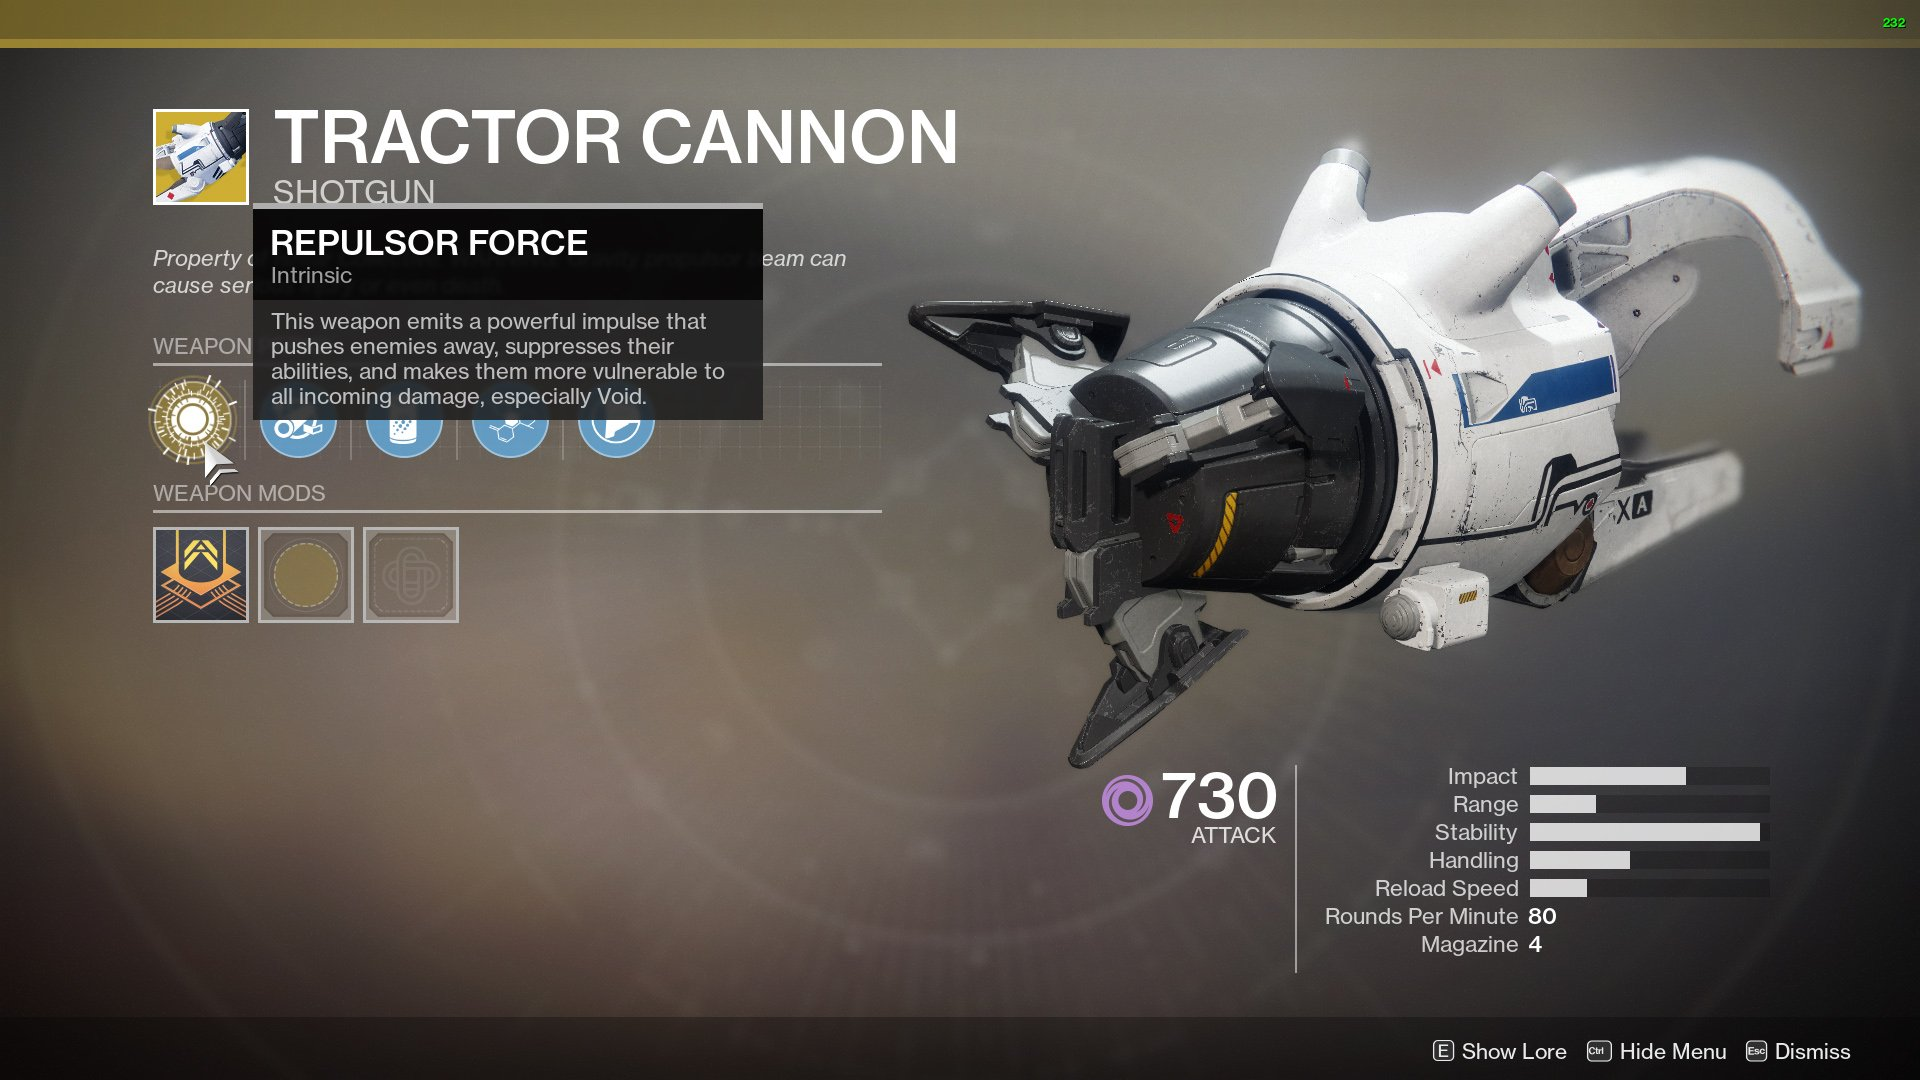 Tractor Cannon